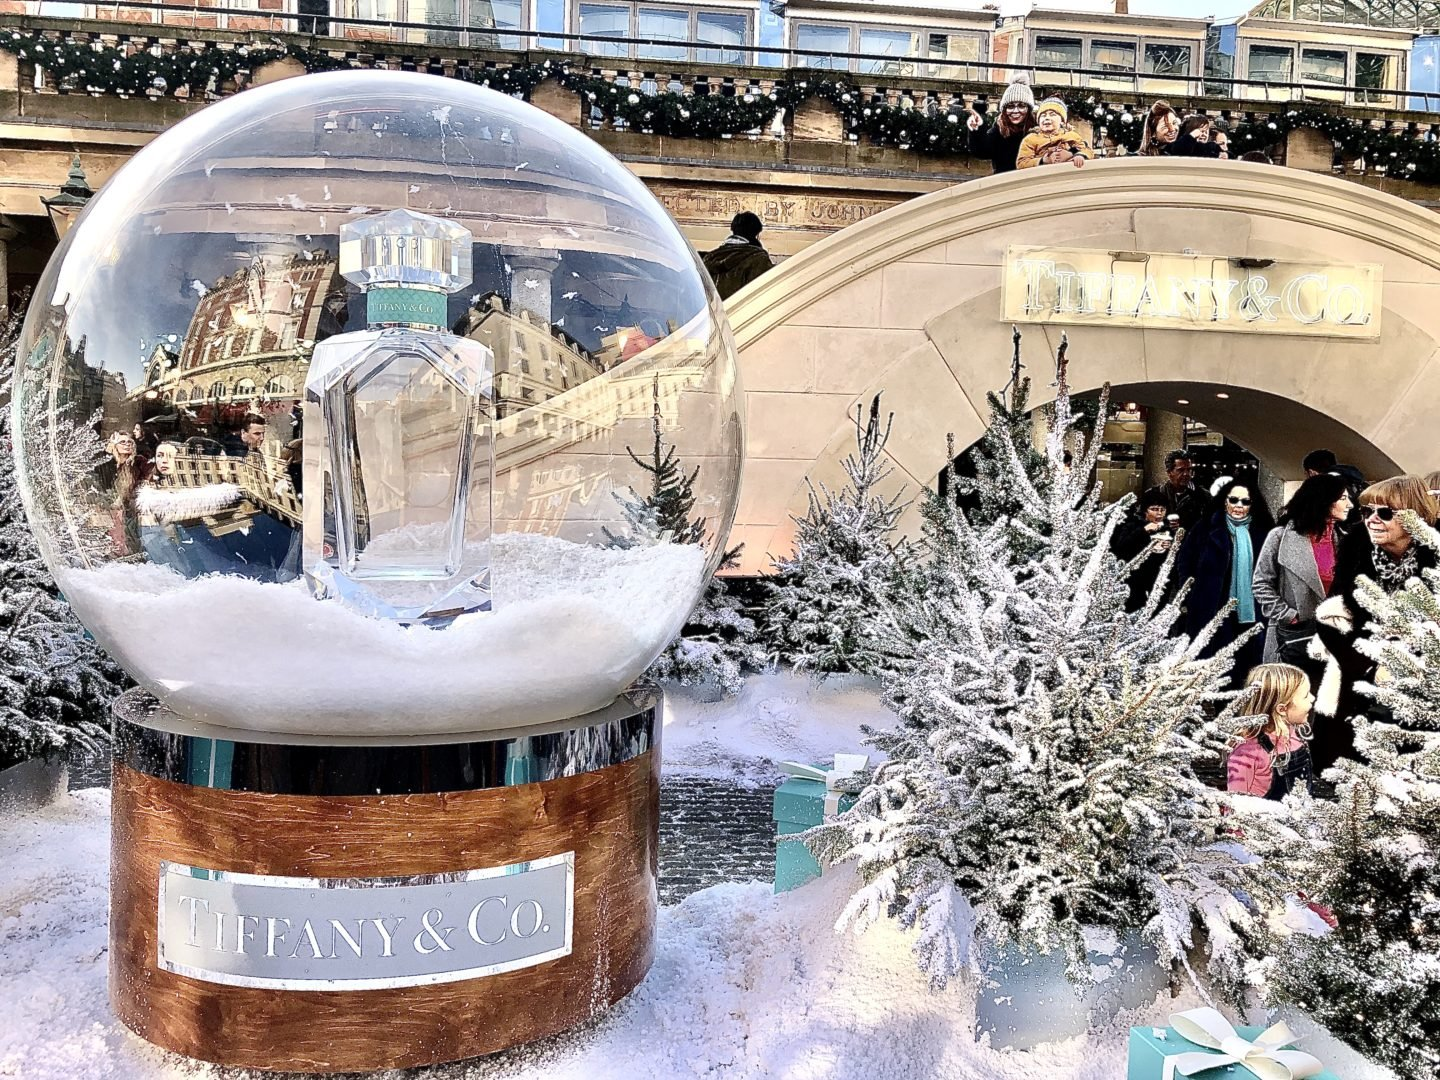 Best Ice rinks in London. Tiffany perfume Ice rink in Londons Covent garden